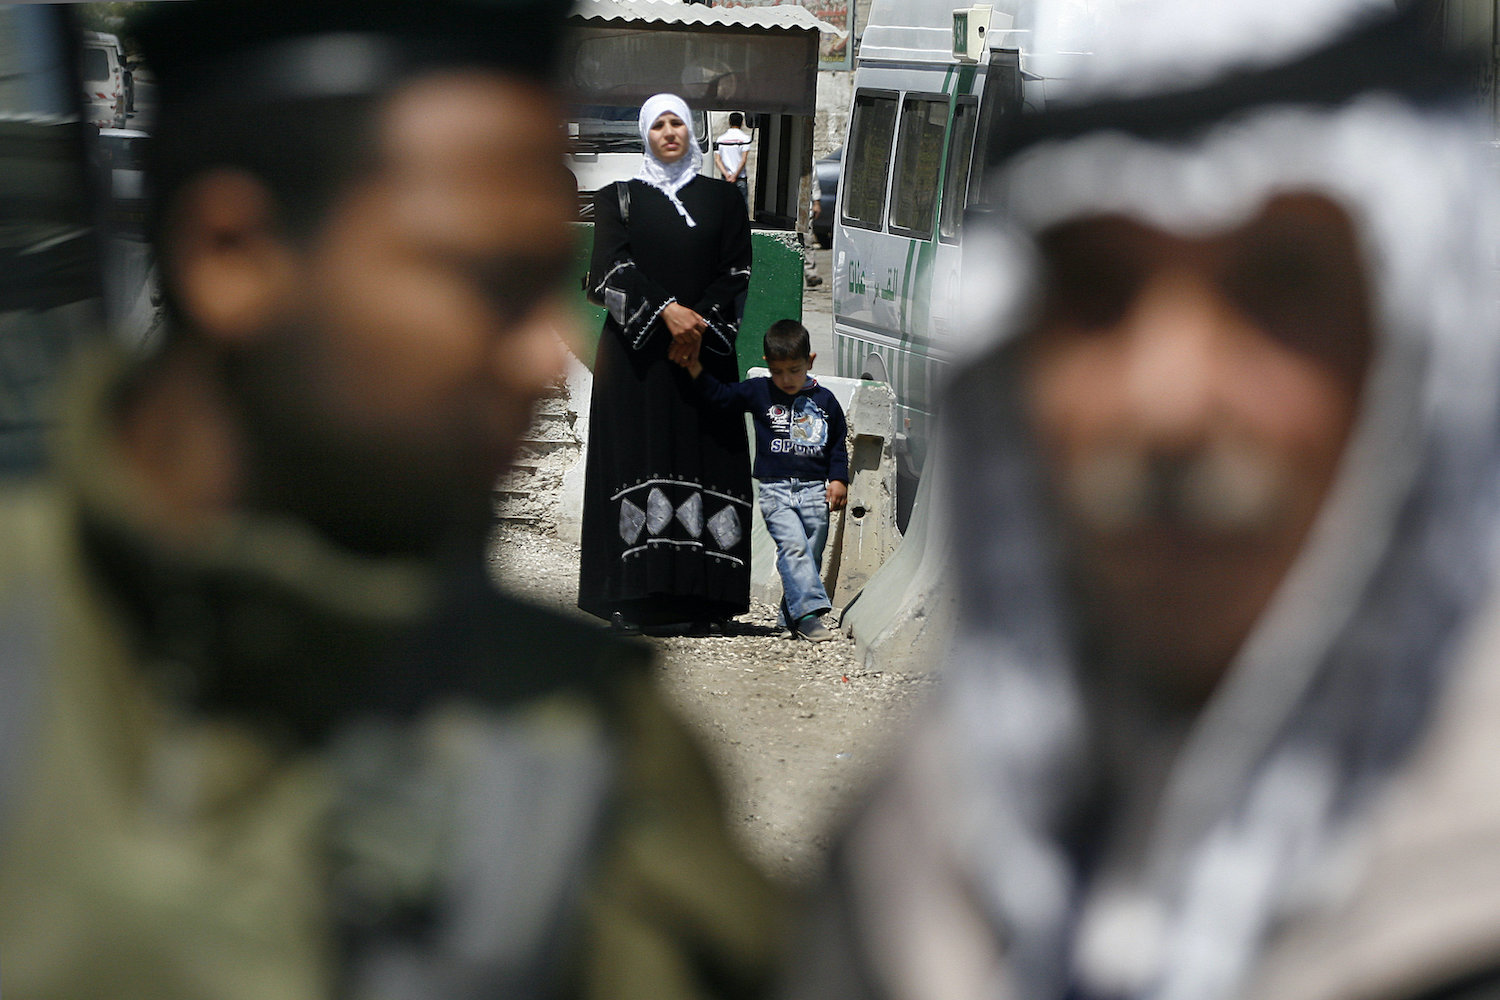 A Palestinian mother and son wait to cross the Shu'fat checkpoint into Jerusalem, while an Israeli border policeman checks a Palestinian man, April 20, 2007. (Michal Fattal/Flash90)